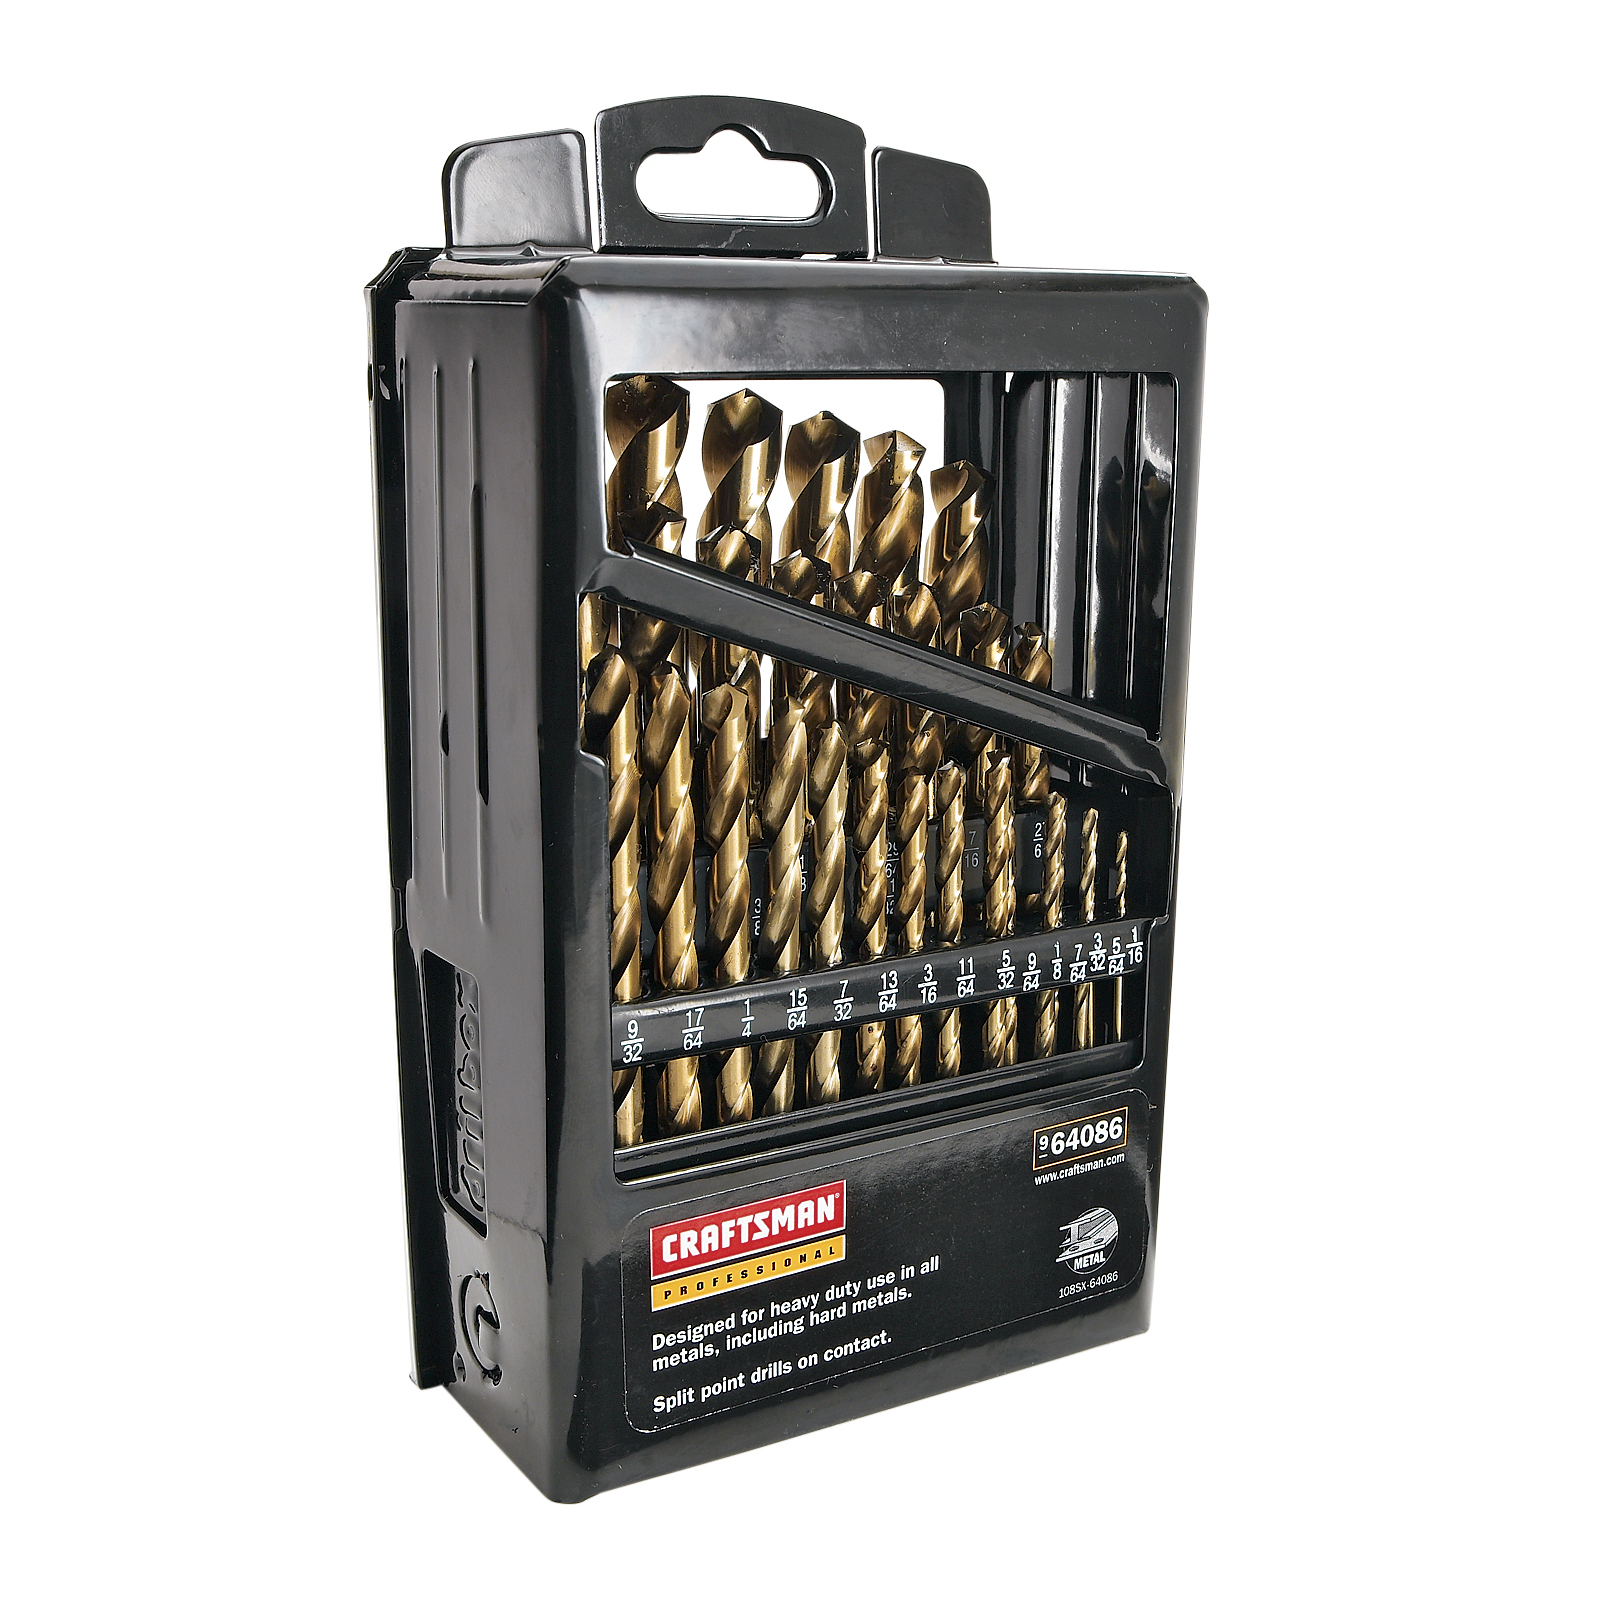 Craftsman 29 pc. Cobalt Drill Bit Set